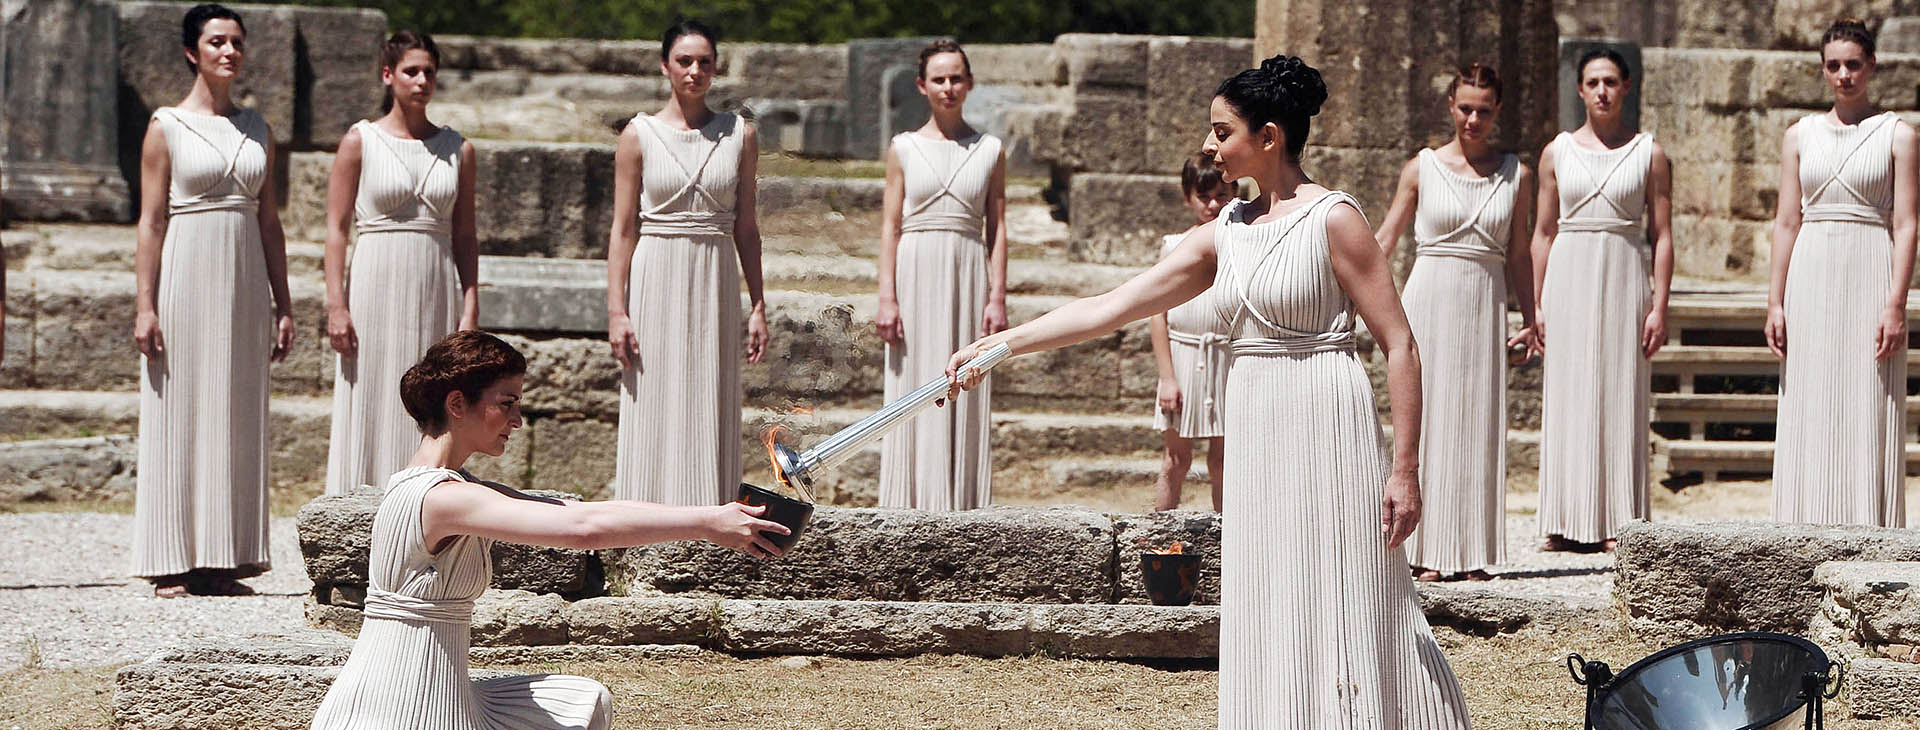 Lighting the Olympic flame in Ancient Olympia